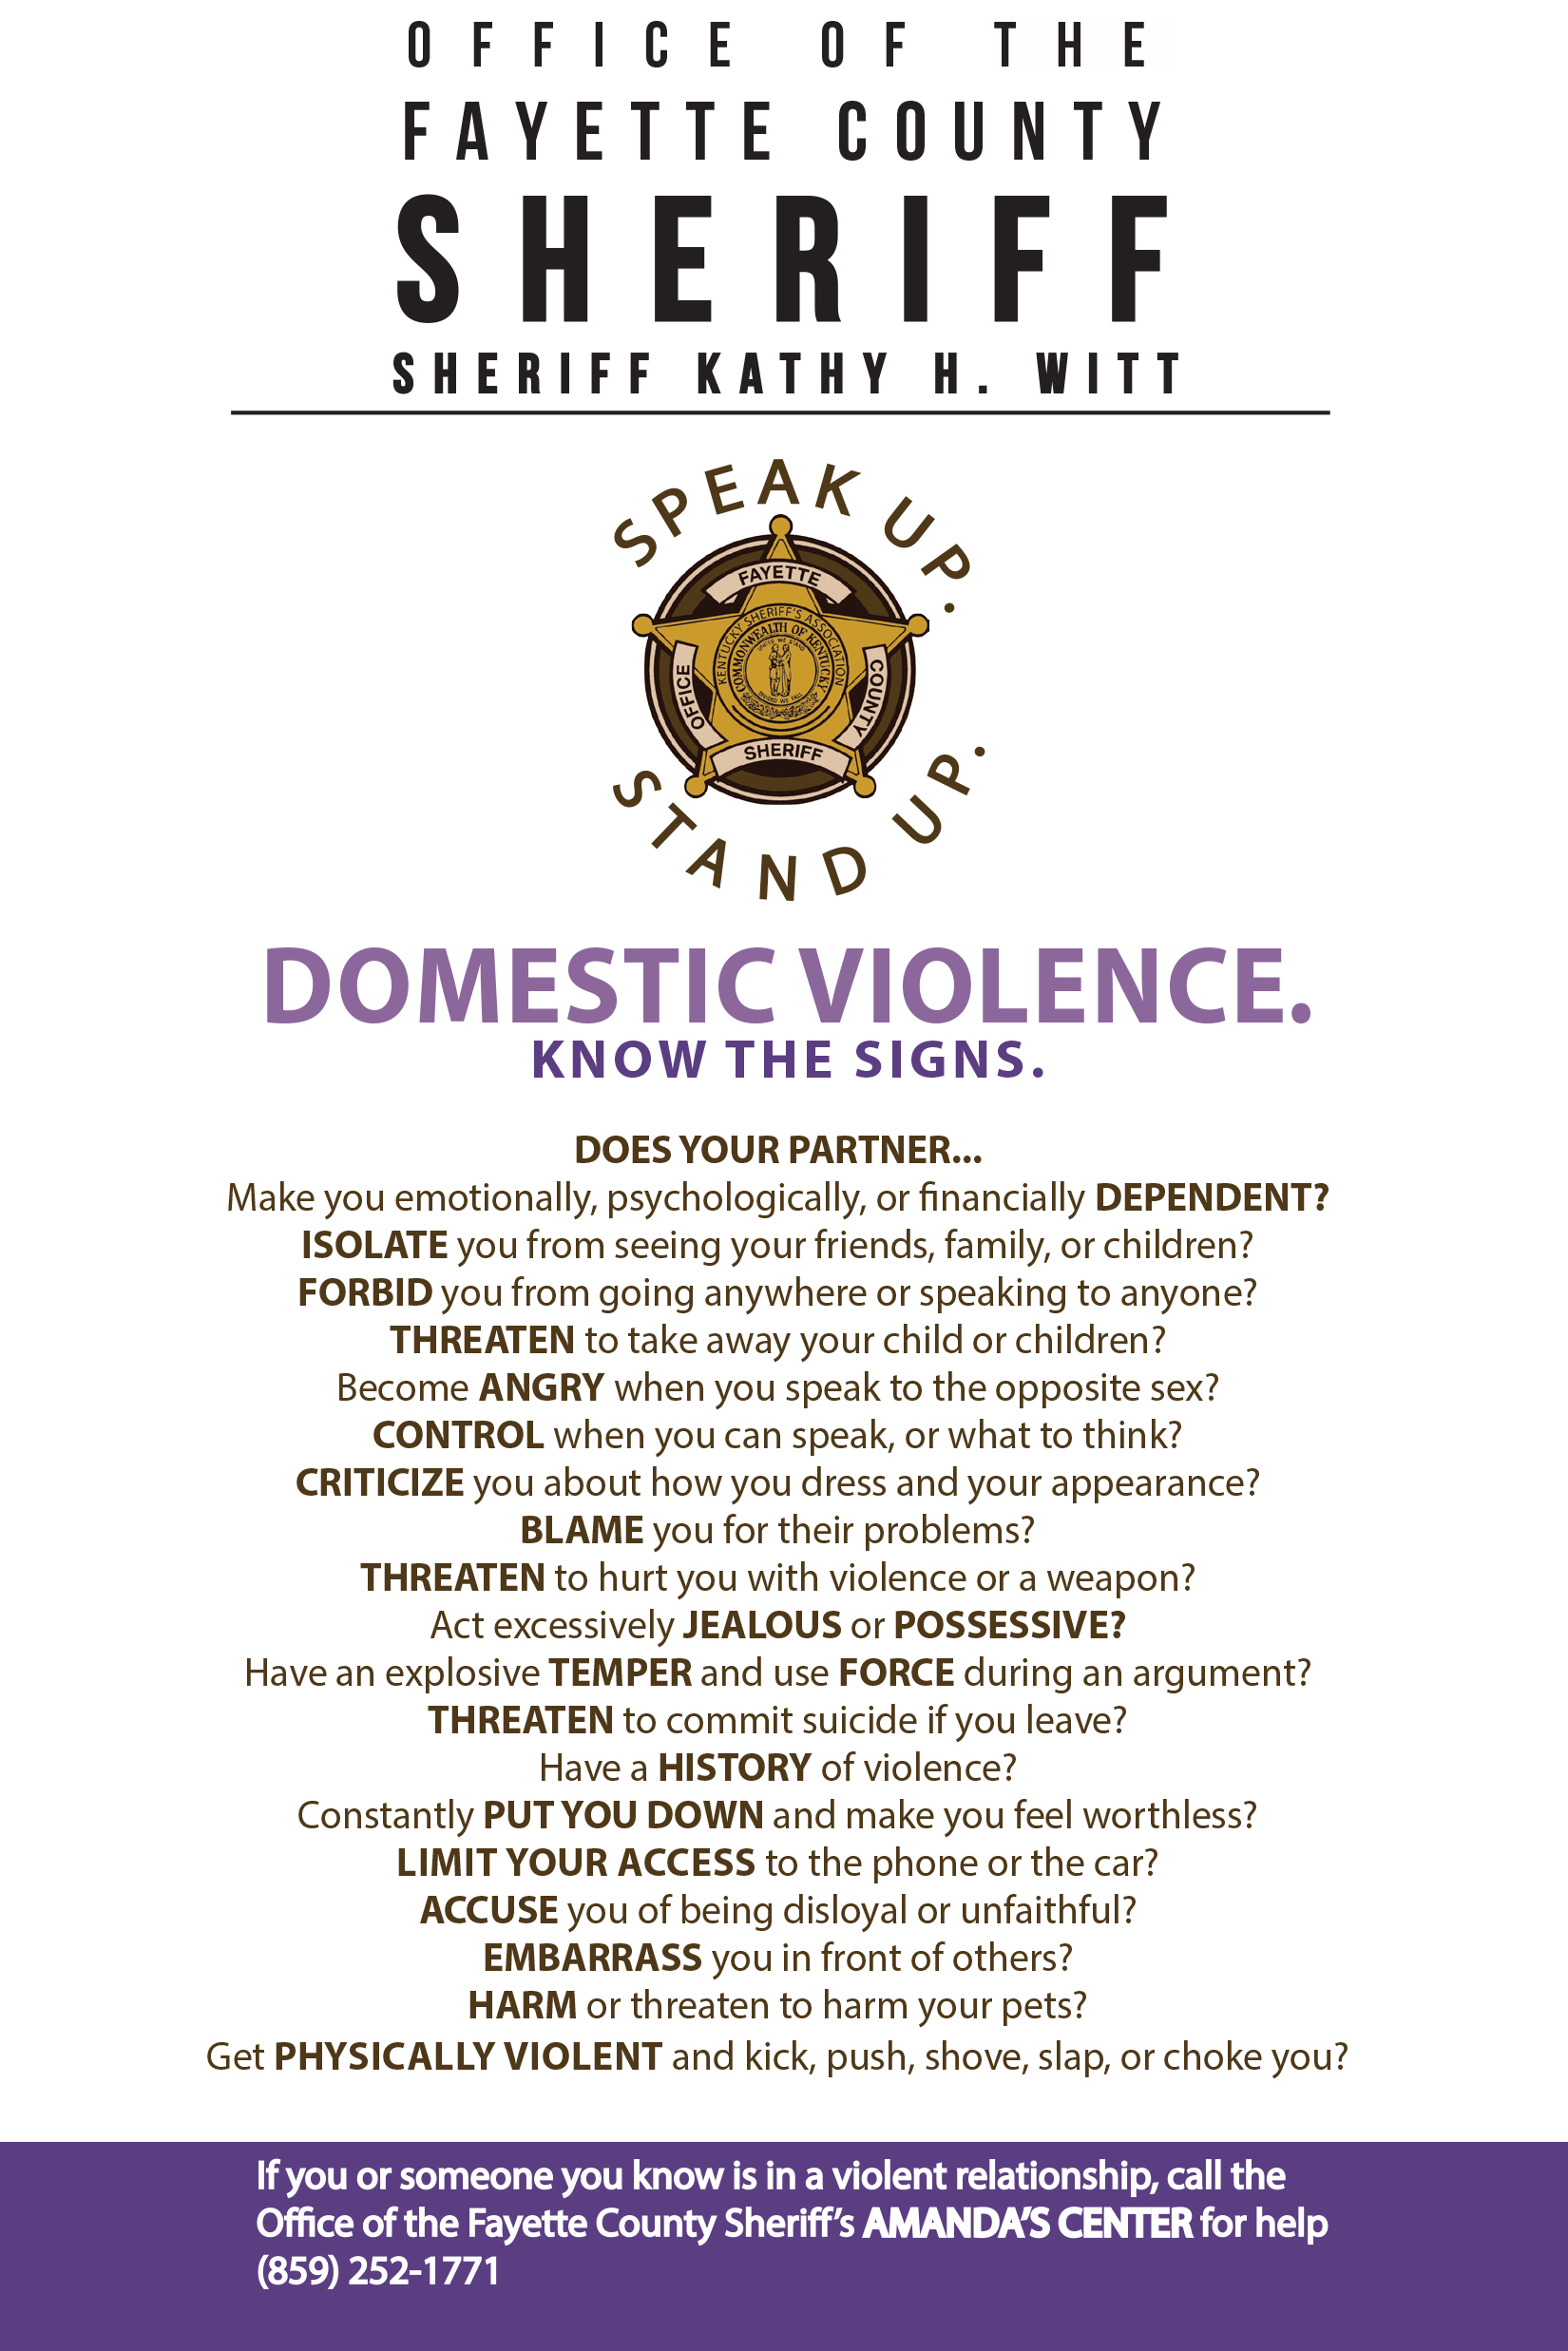 Domestic violence. Know the signs.